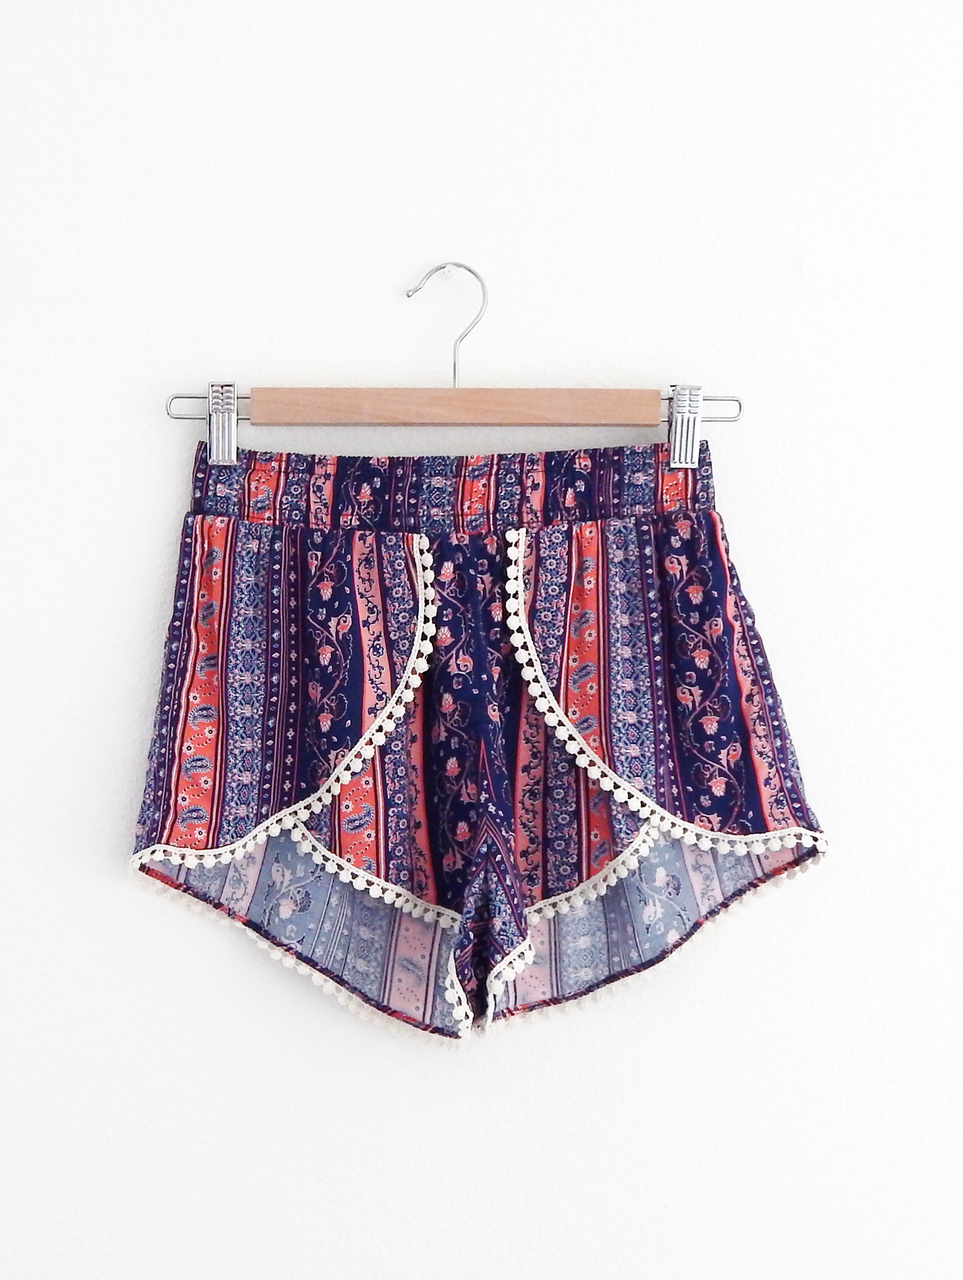 Pom pom & paisley print. Fall in love with the cutest shorts at tautmun.com!